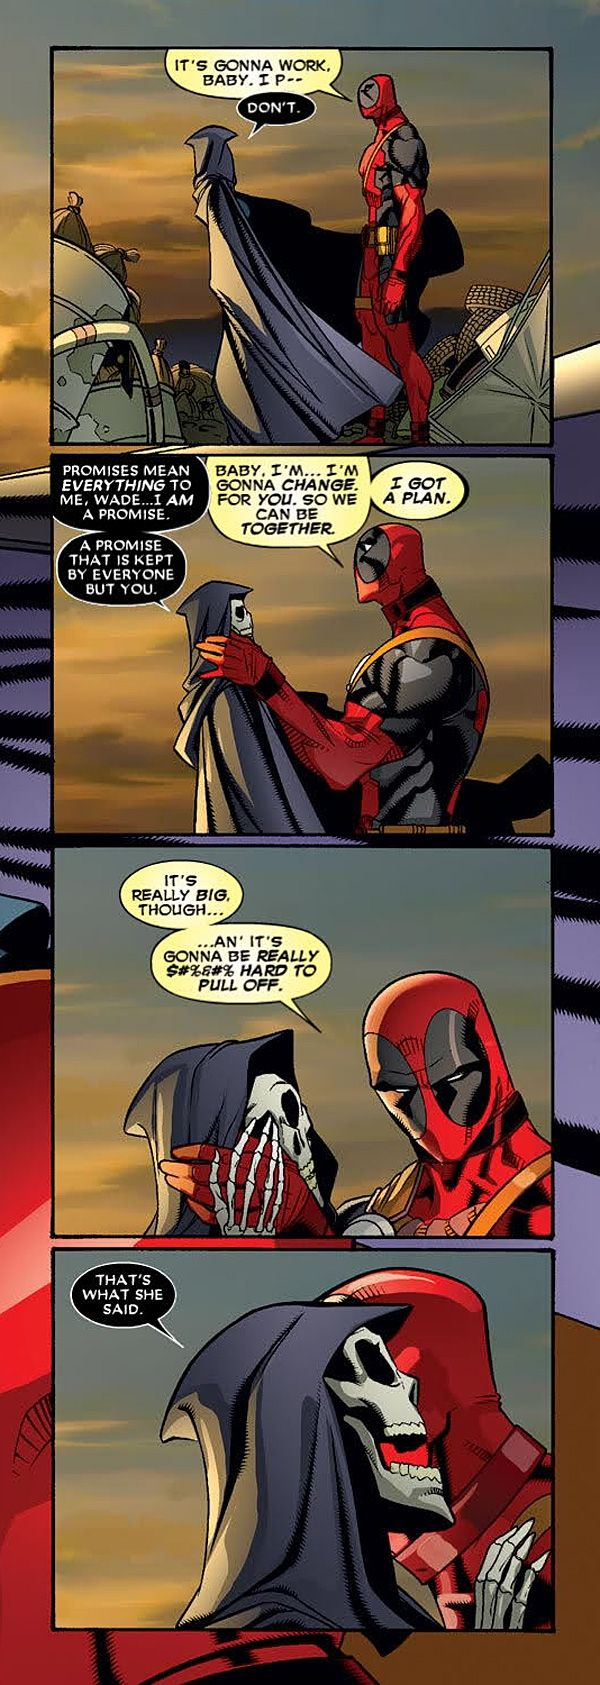 Deadpool and Lady Death Comic http://geekxgirls.com/article.php?ID=9554